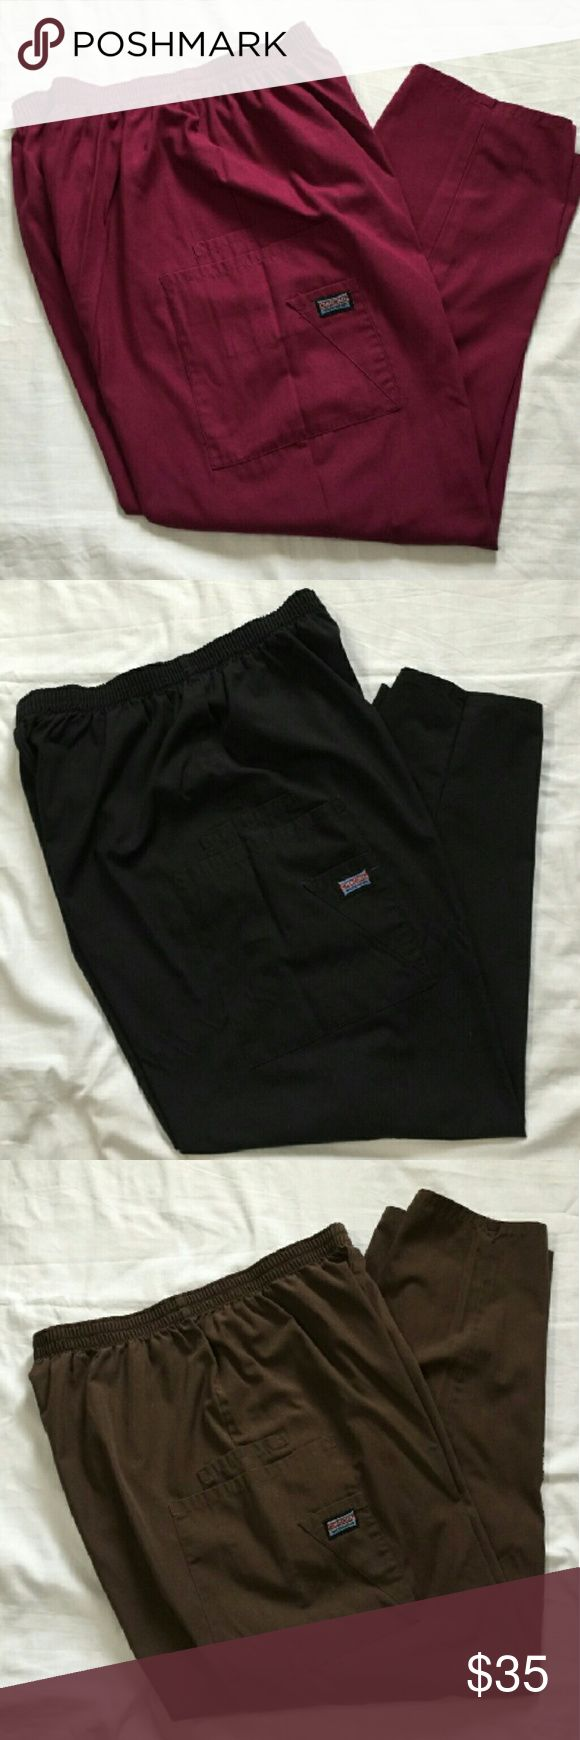 Three Pairs Petite Large Scrub Pants Cherokee brand LP scrub pants in berry, black, and brown. Berry and black were worn once or twice, brown never worn. Price is for them bundled together, but I'm willing to split them up for the right price. Cherokee Pants